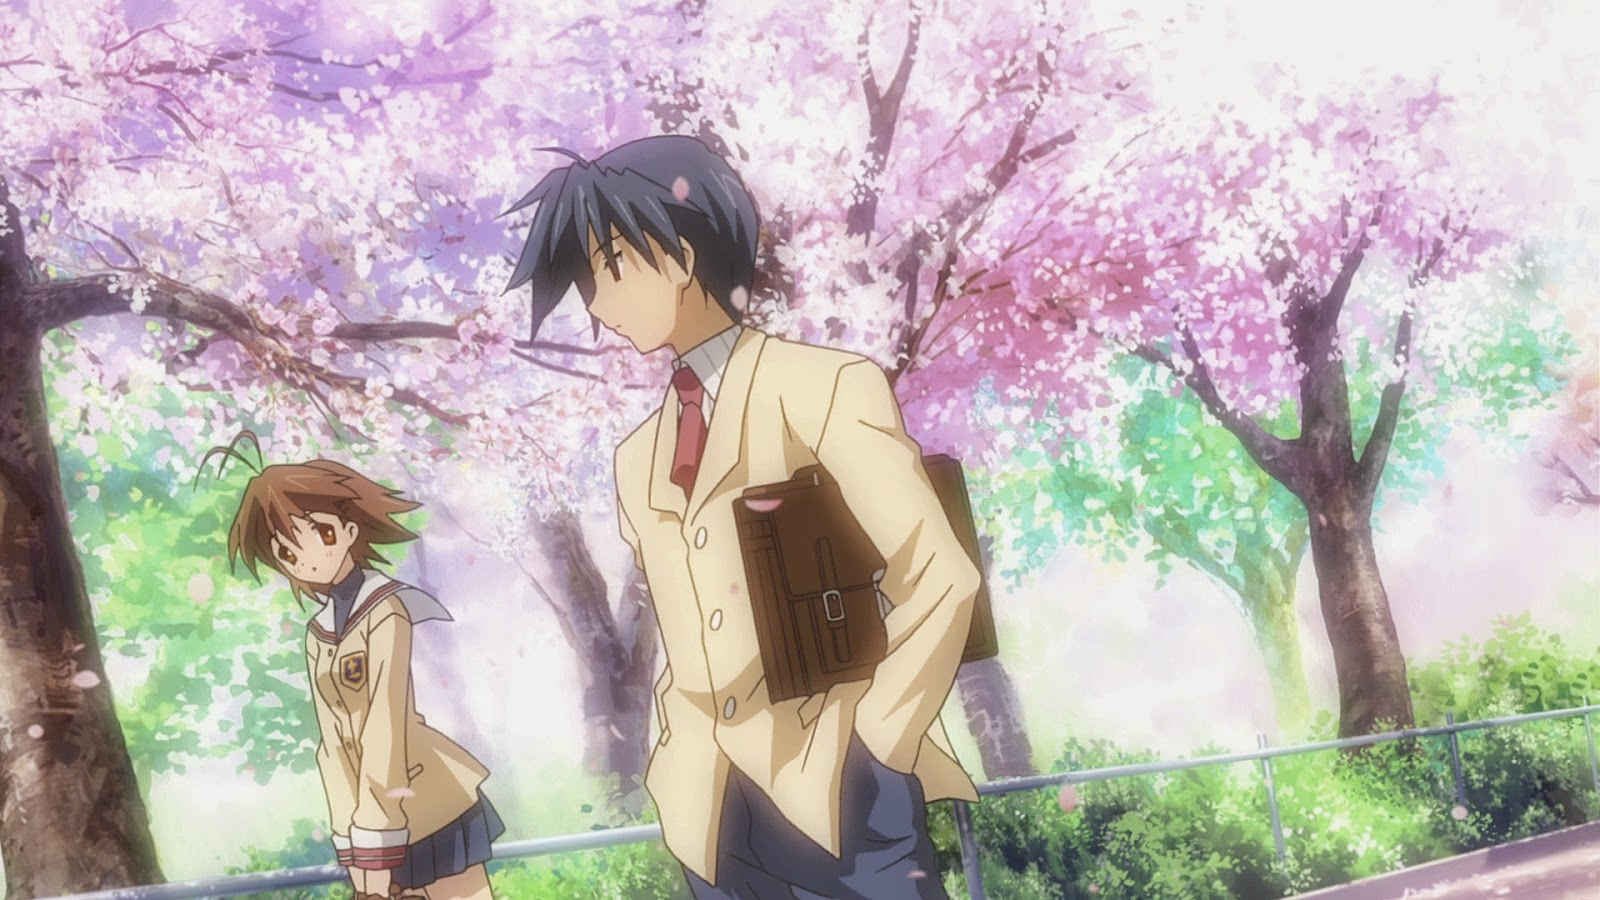 Trueblade24 My Favorite Anime Series Clannad And Clannad After